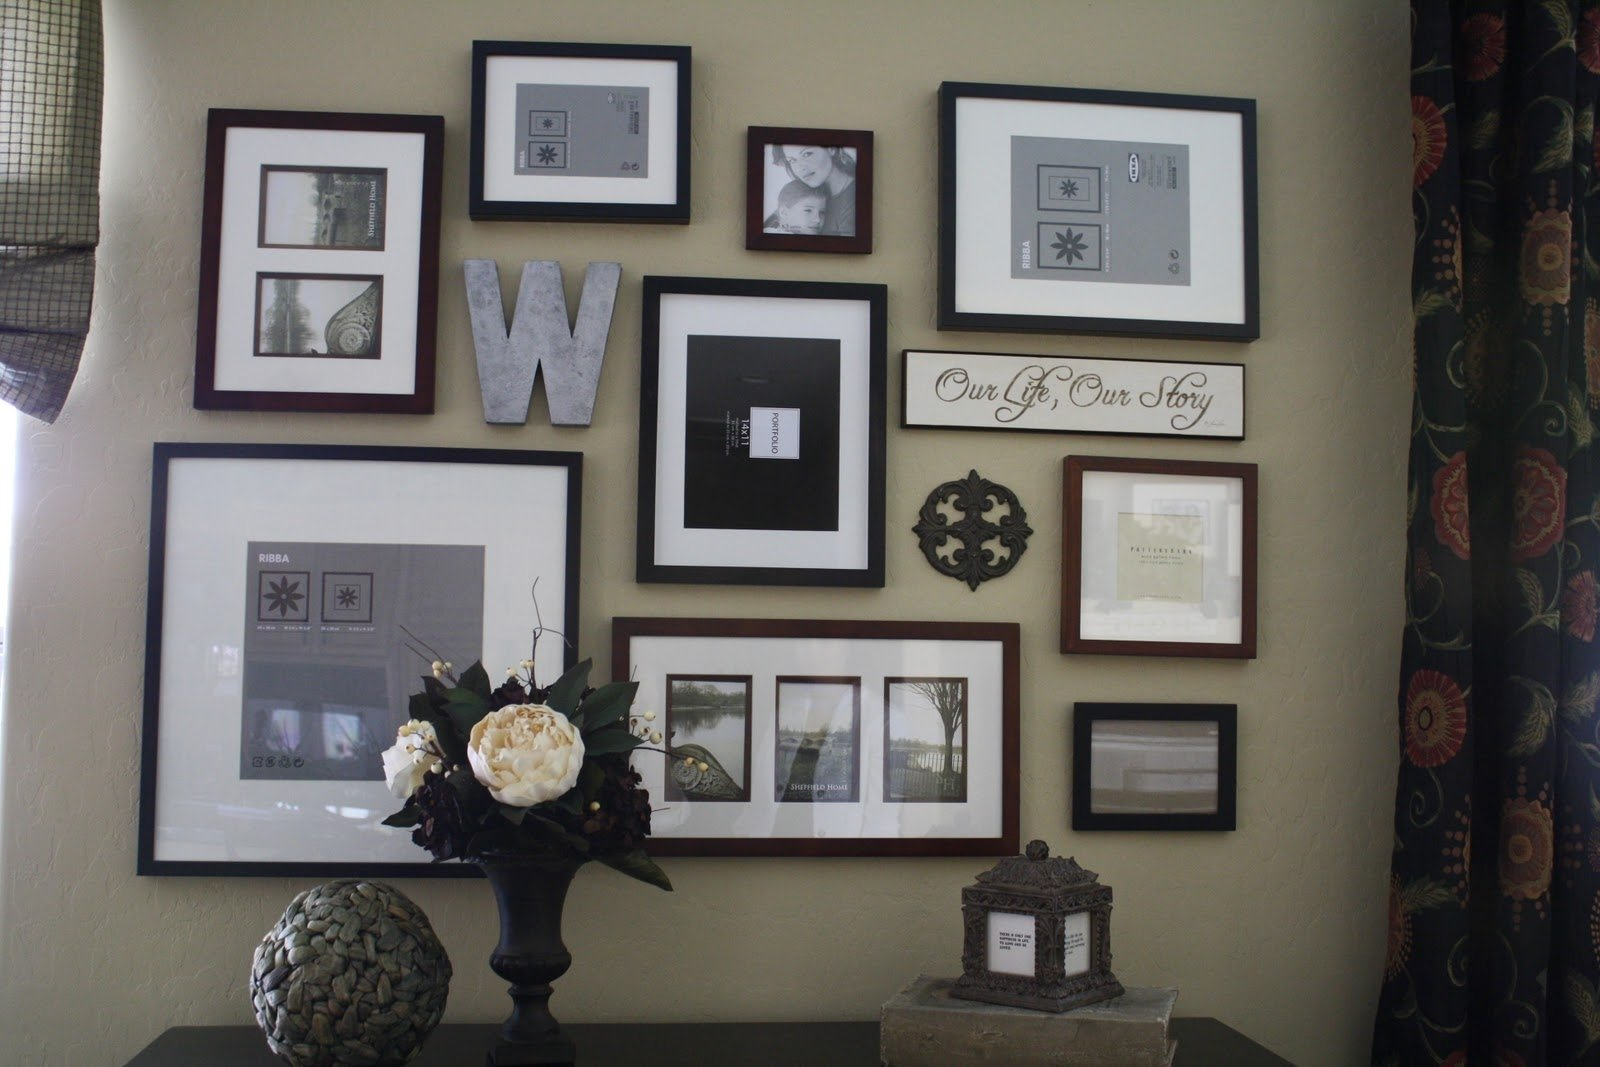 10 Trendy Photo Collage On Wall Ideas family picture collage wall ideas home wall decoration 1 2020